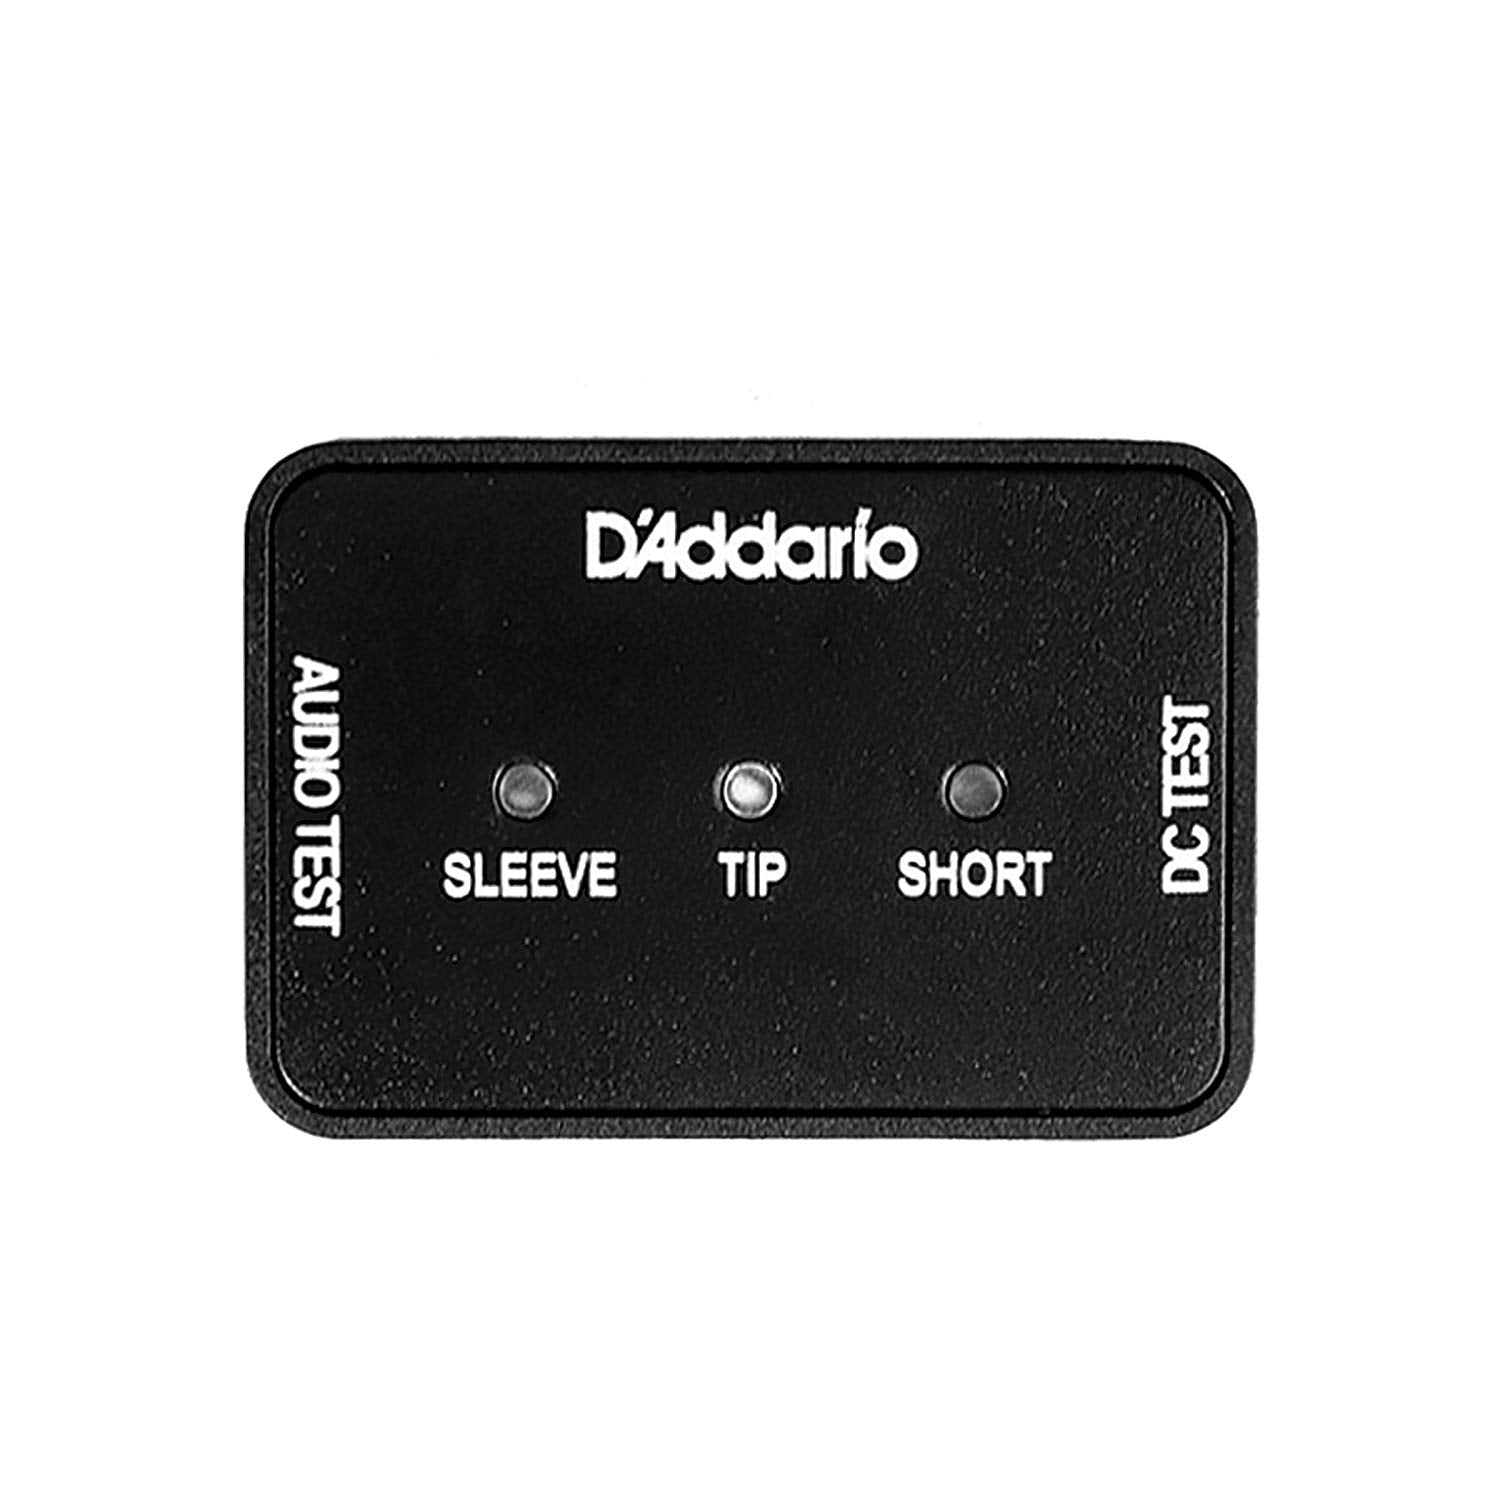 Shop online for D'Addario Cable Tester PW-DIYCT-01 today.  Now available for purchase from Midlothian Music of Orland Park, Illinois, USA